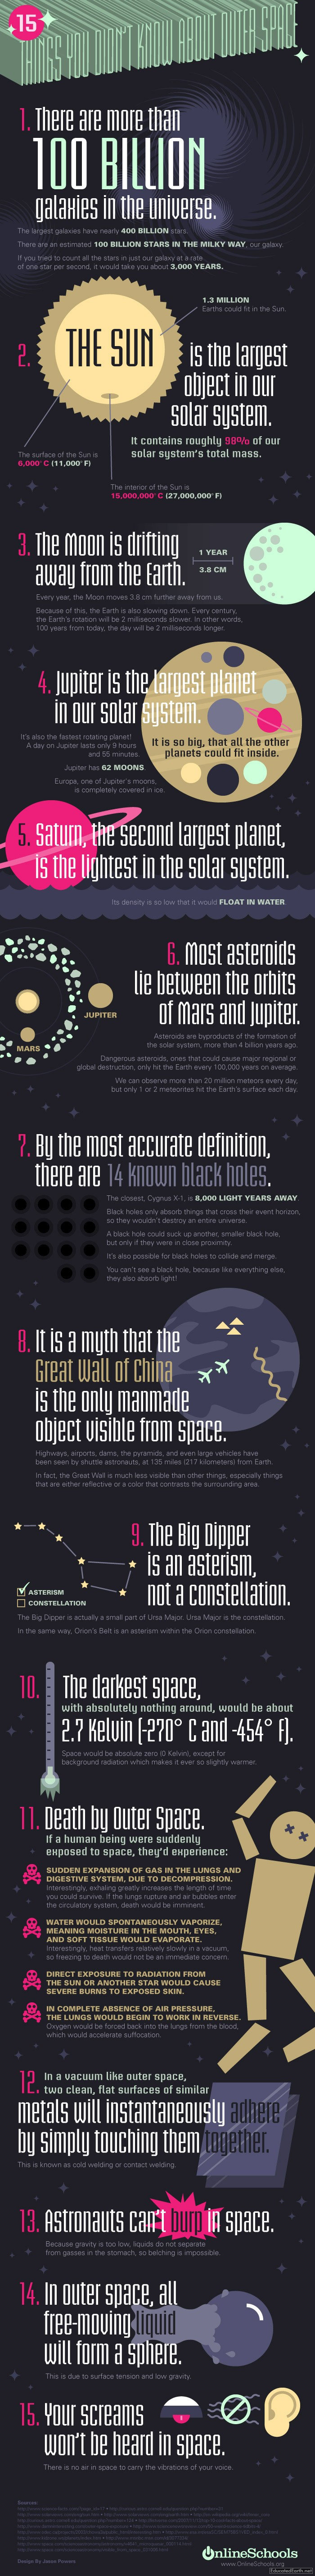 15 Fun Facts About The Universe